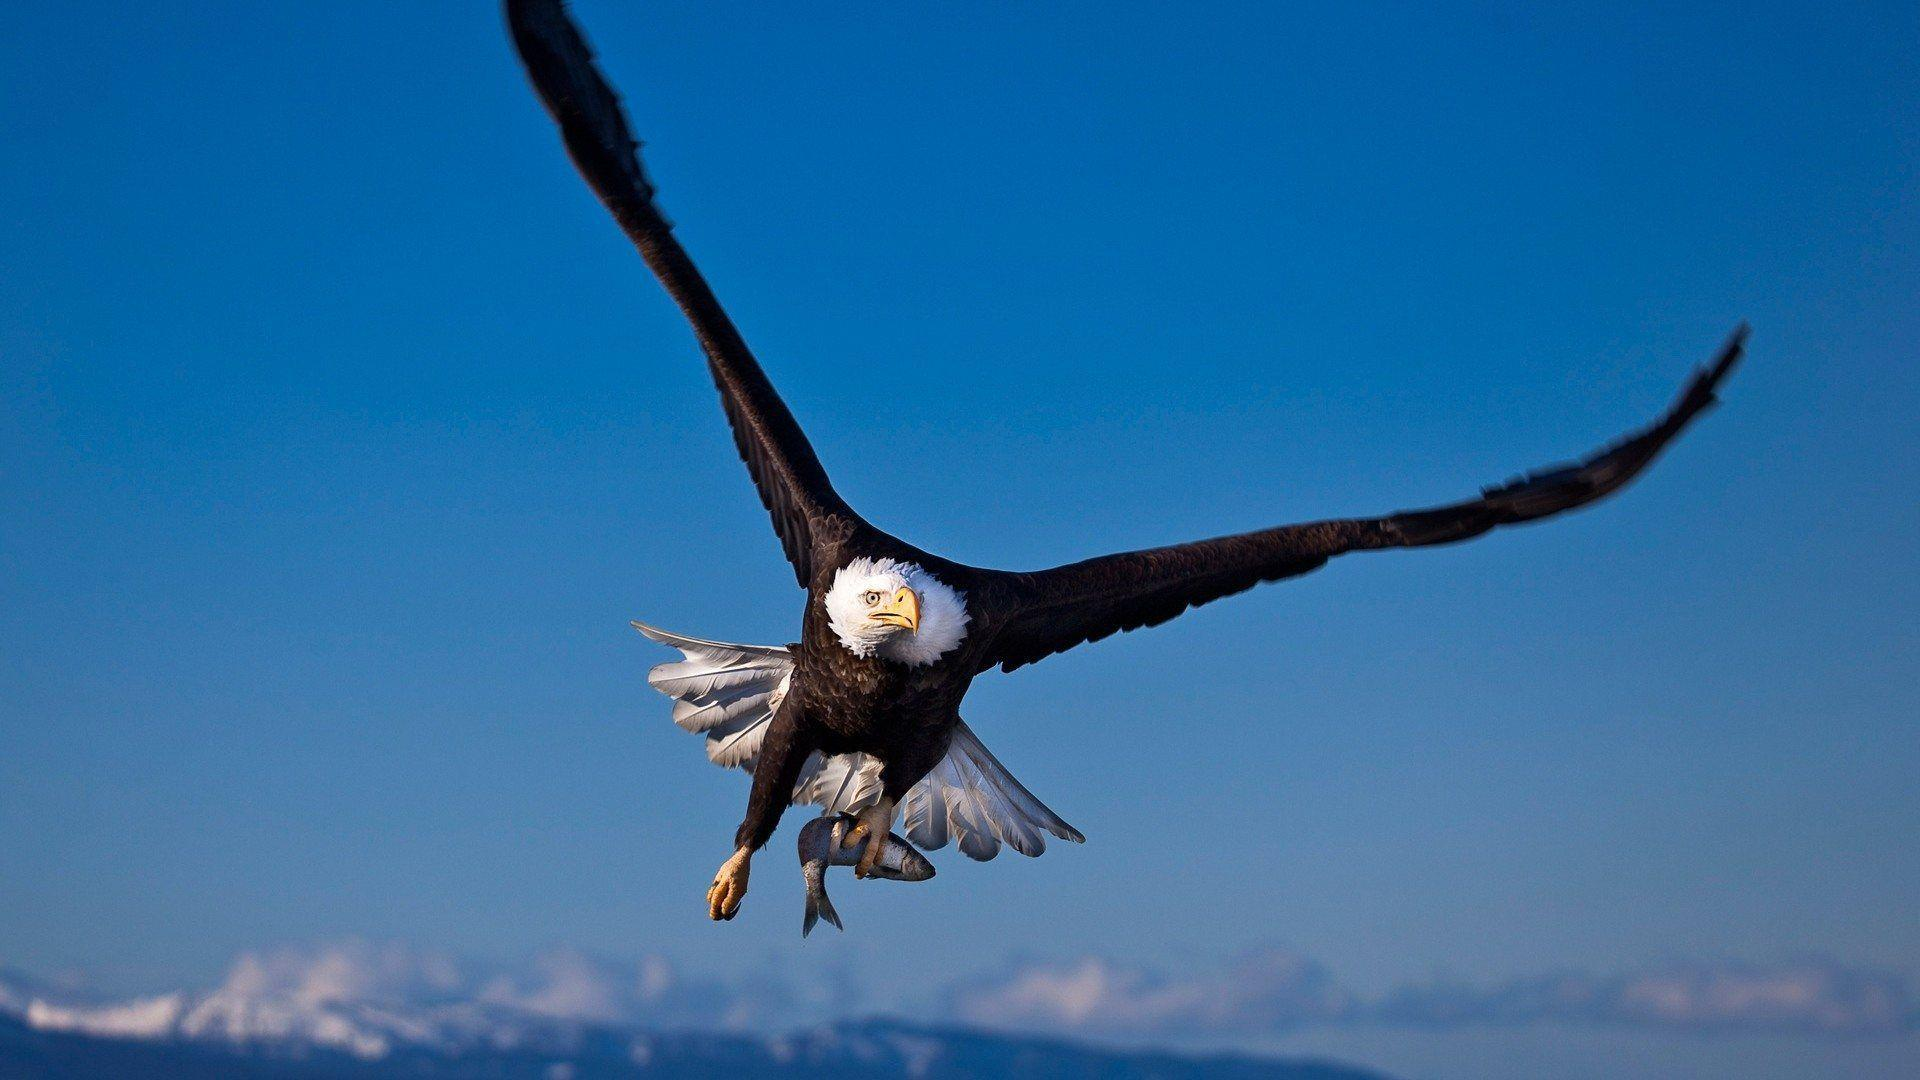 Animals For > American Eagle Hd Wallpaper